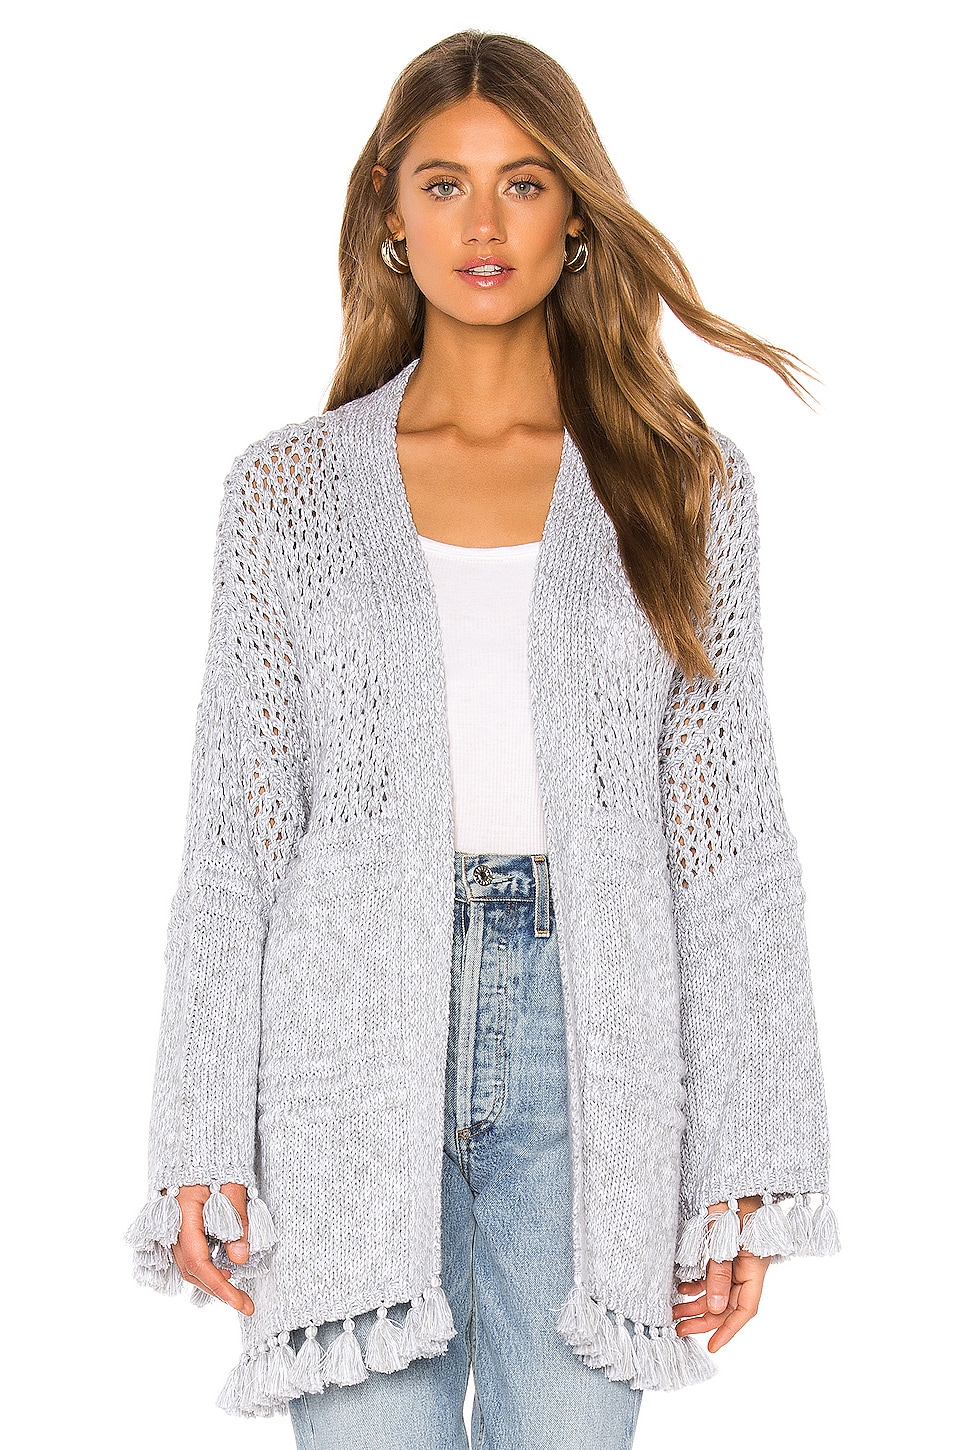 Autumn Cashmere Tassel Open Cardigan in Sweatshirt & Bleach White